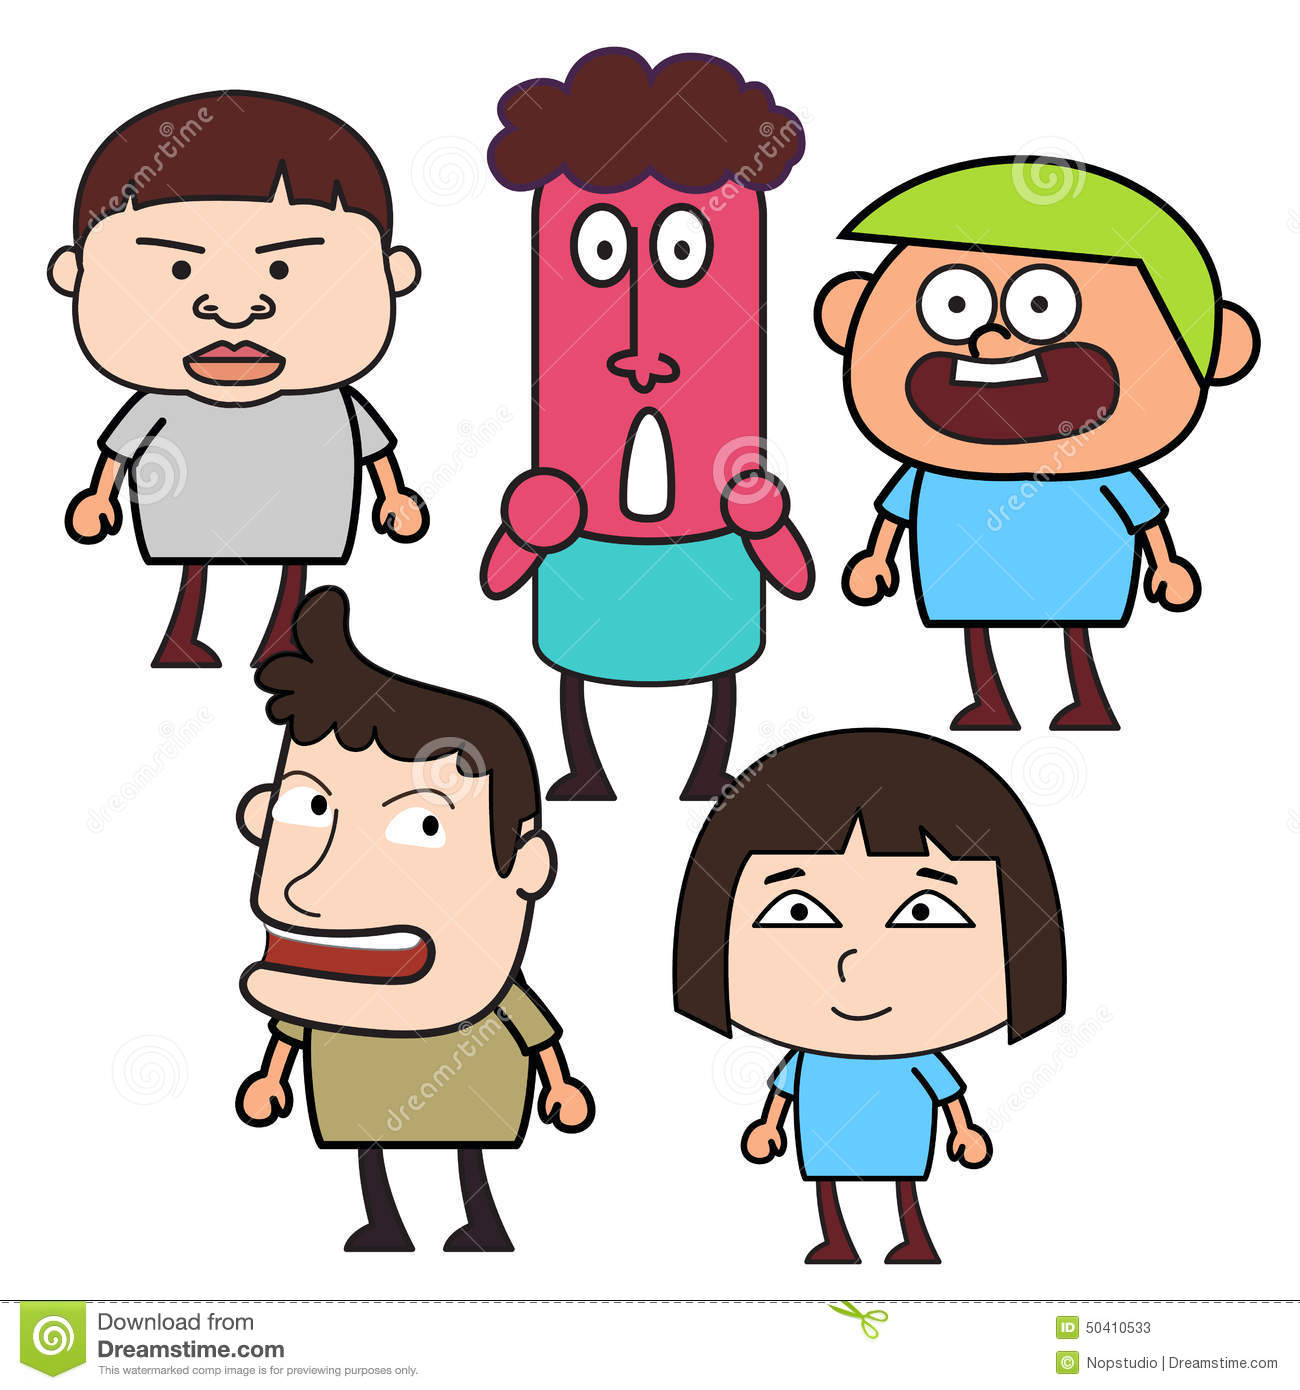 Group Of 6 Cartoon Characters : Group of funny cartoon people stock vector image